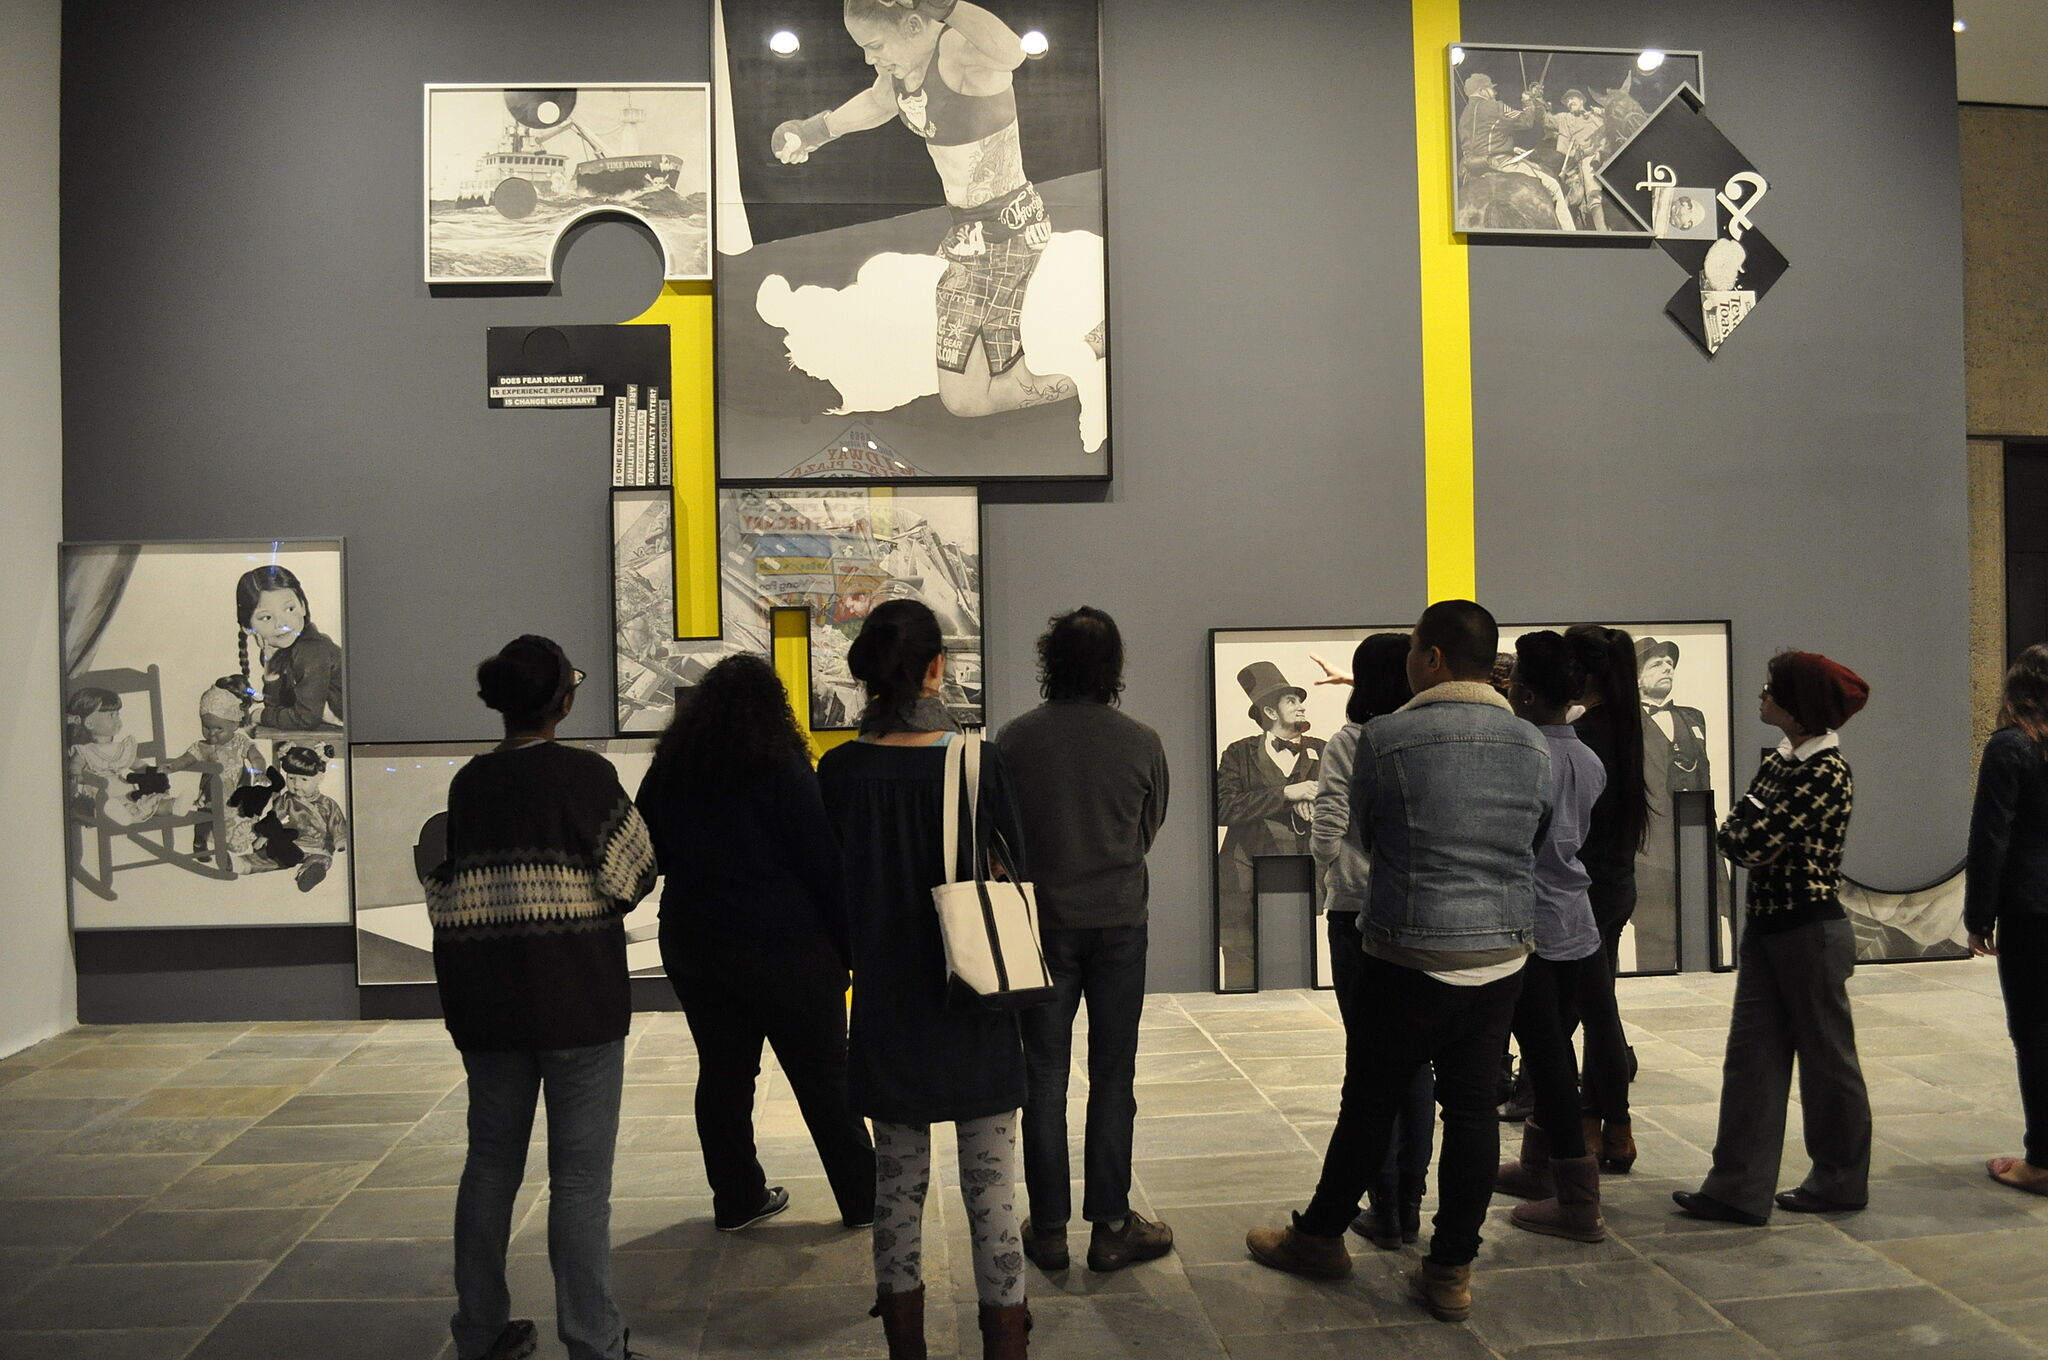 A youth group looks at large photos in the Biennial exhibit.